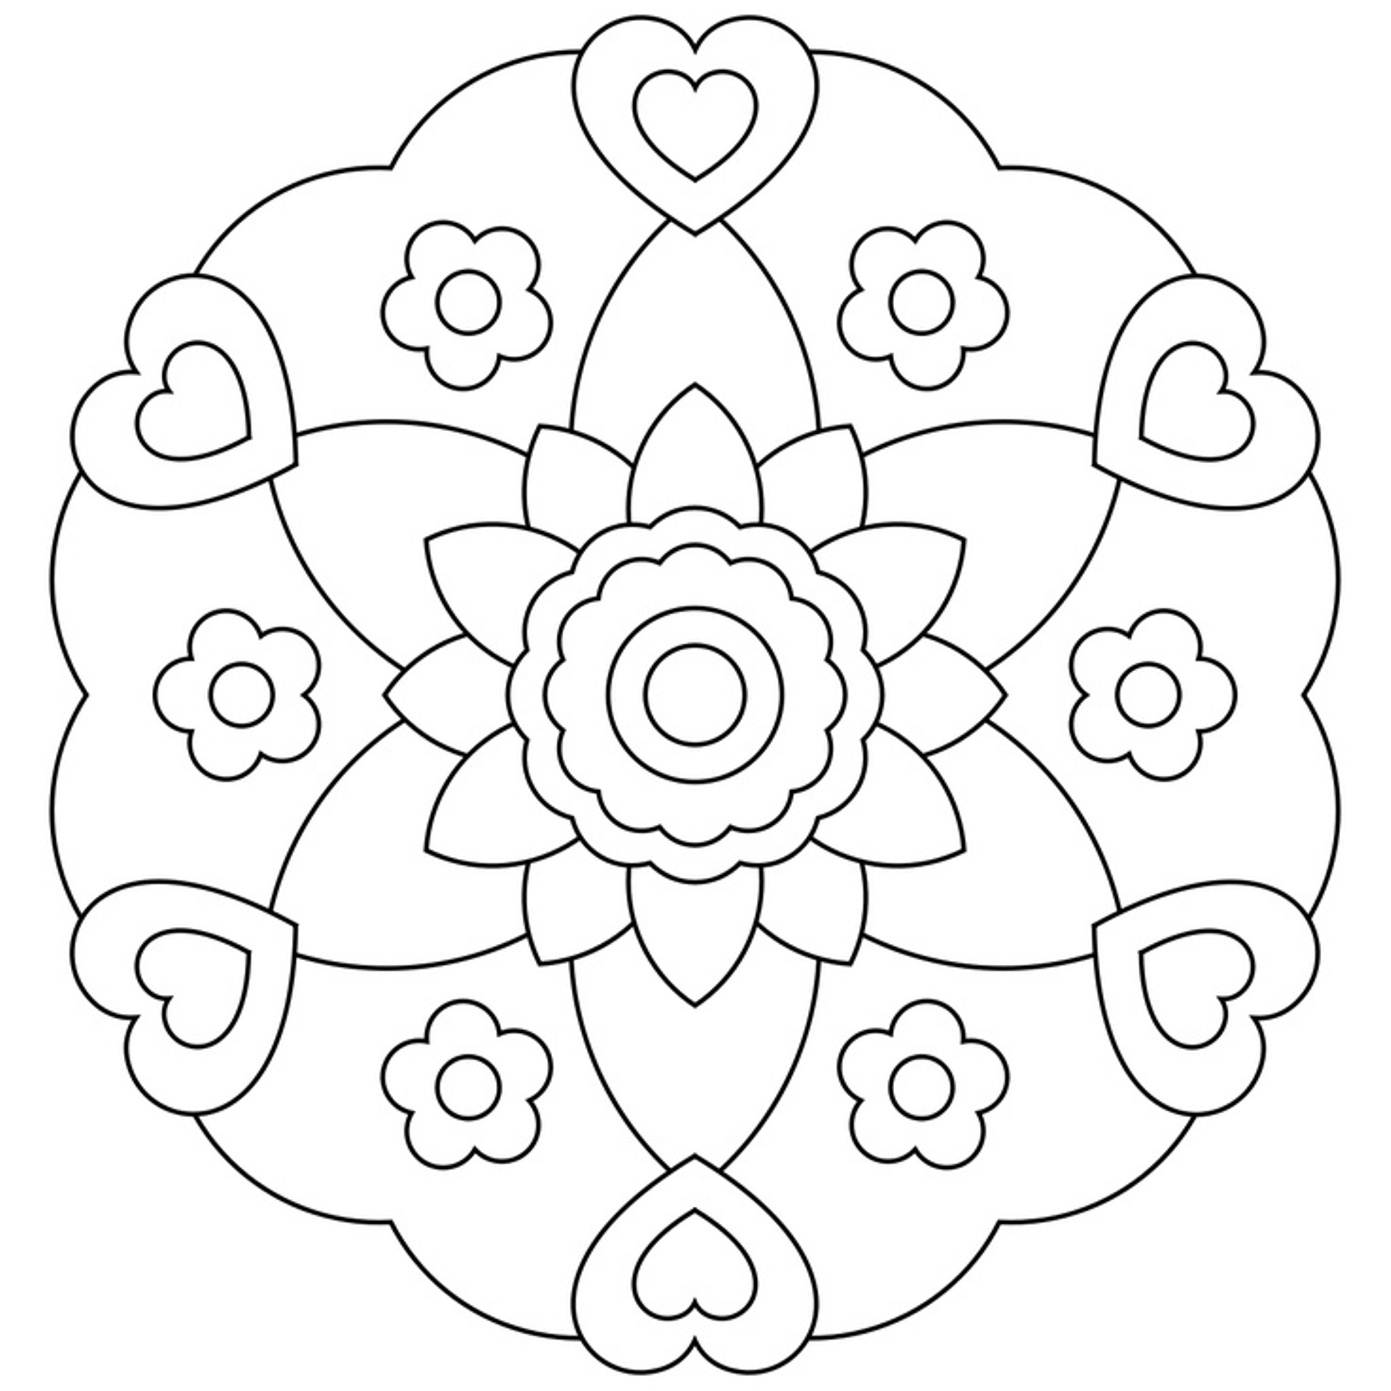 free easy coloring pages simple fish coloring pages download and print for free easy coloring free pages